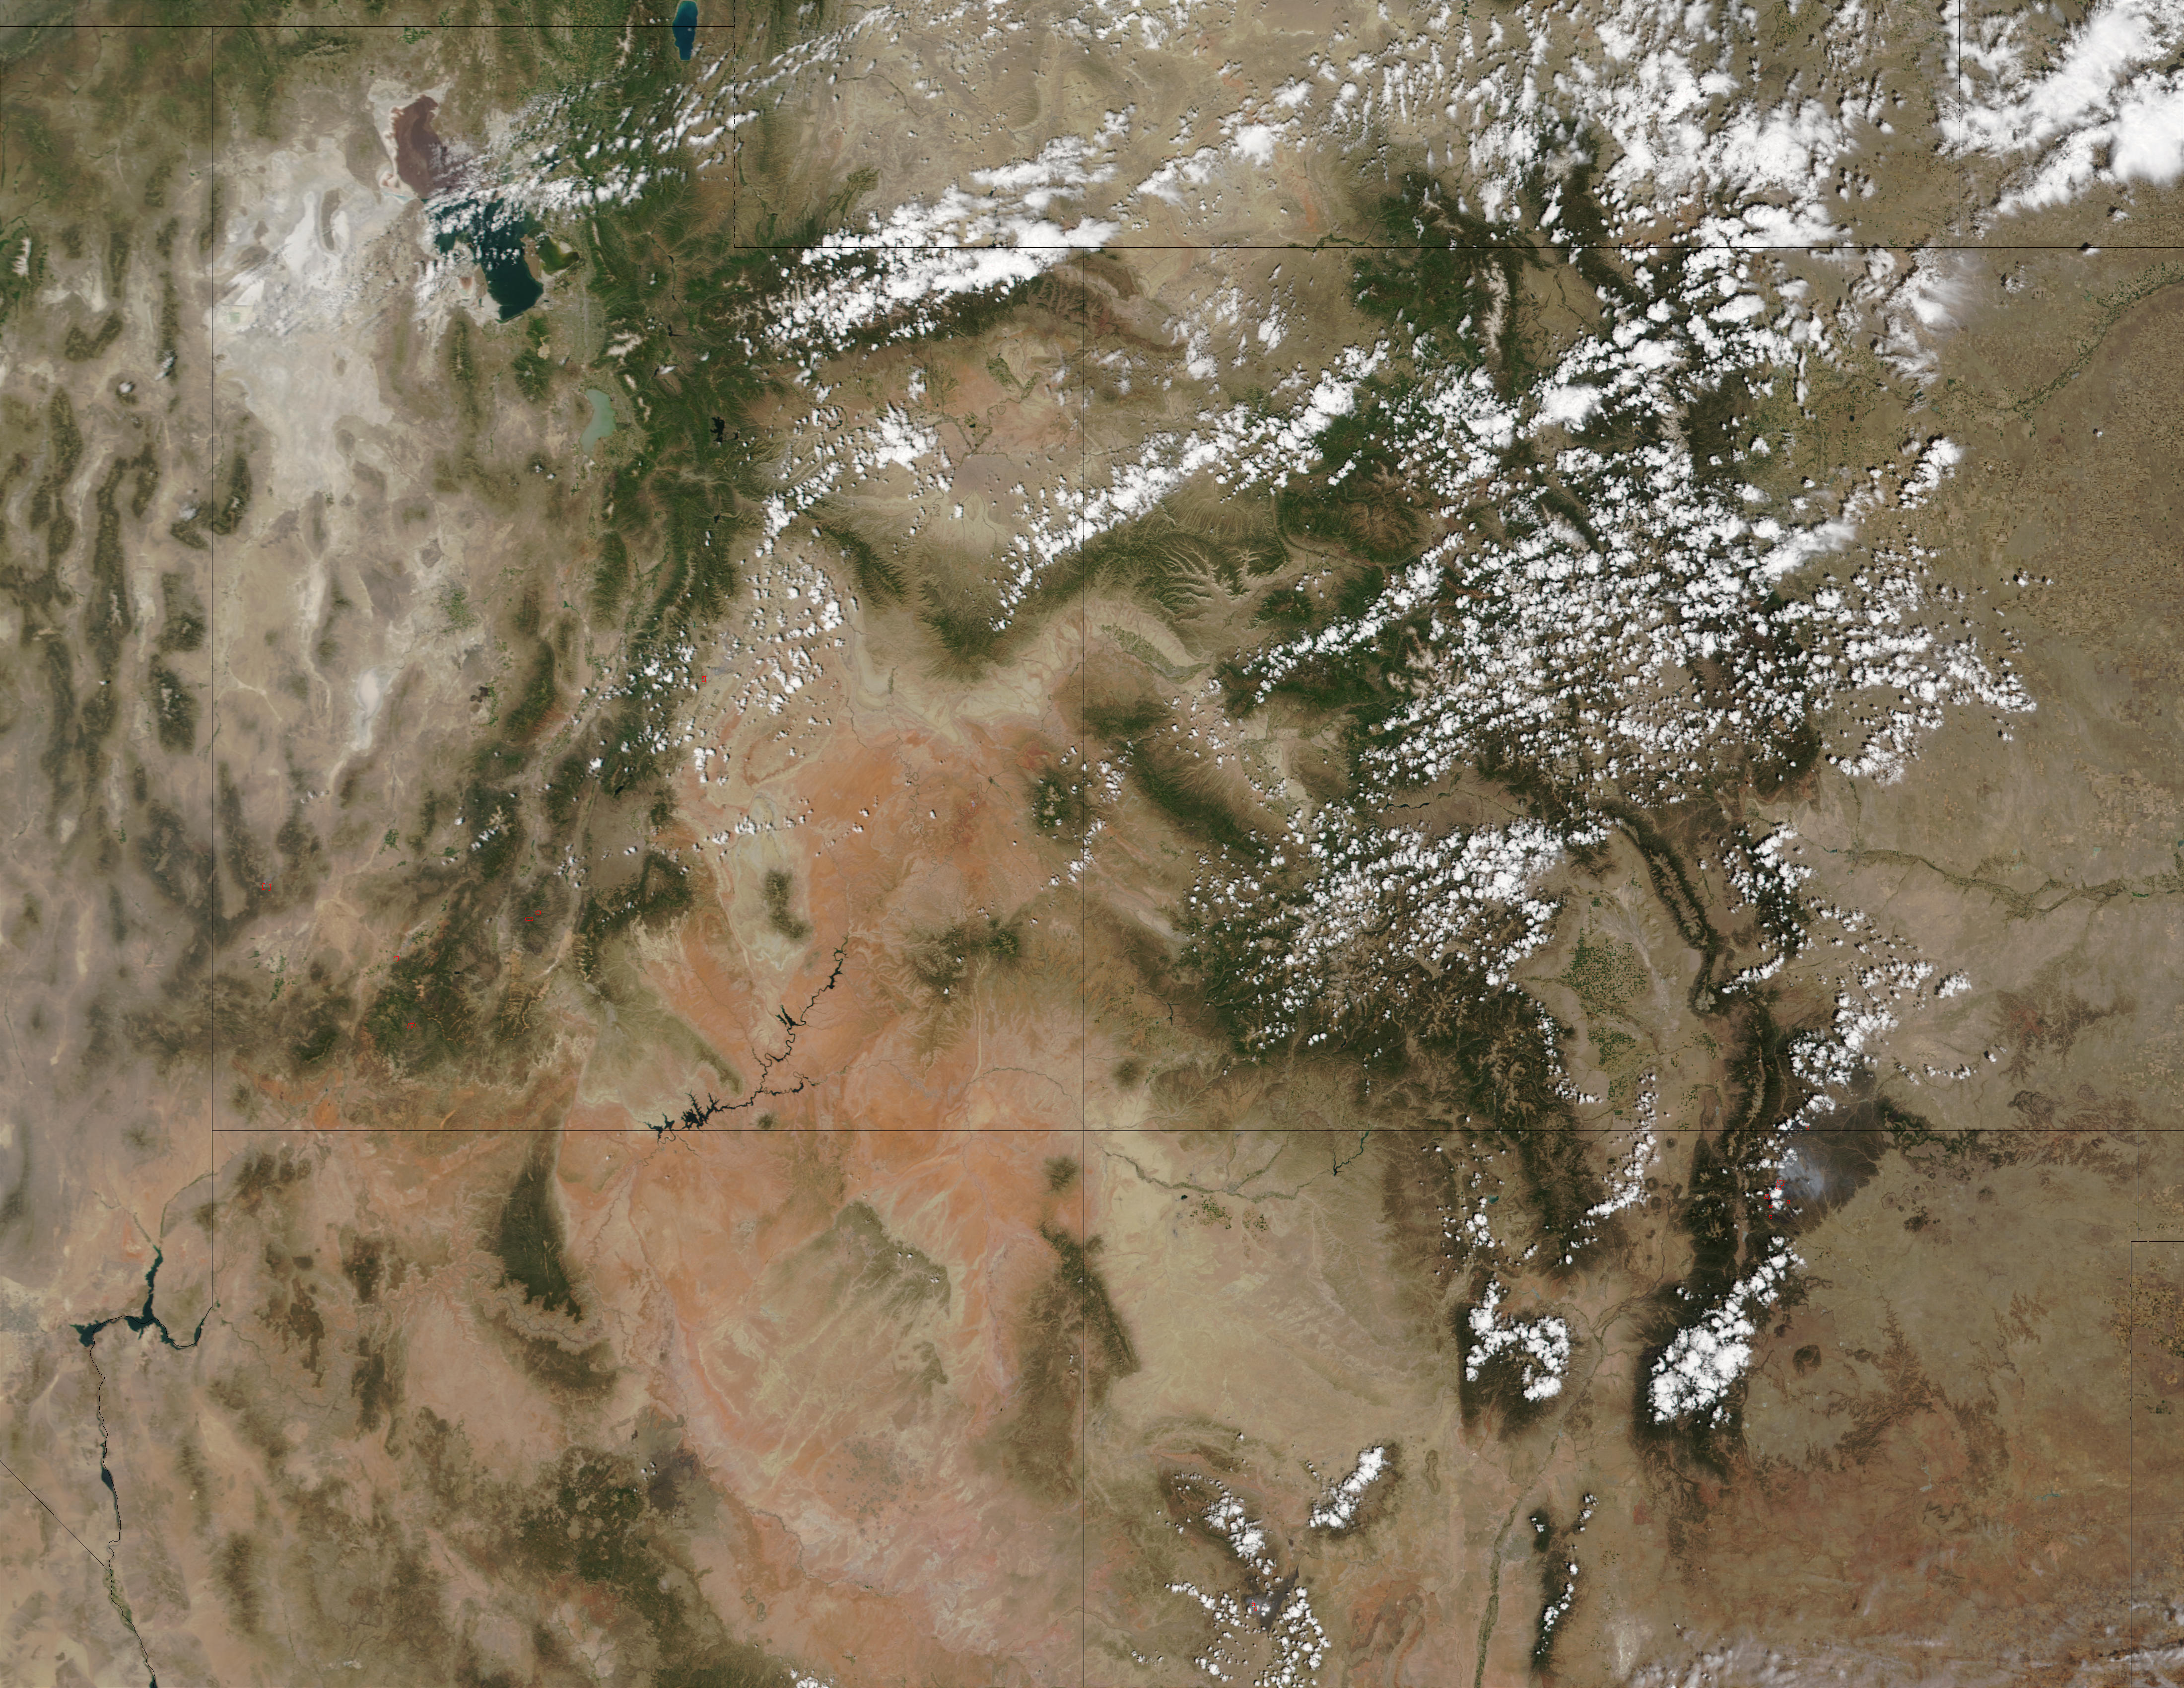 Fires in Utah and New Mexico